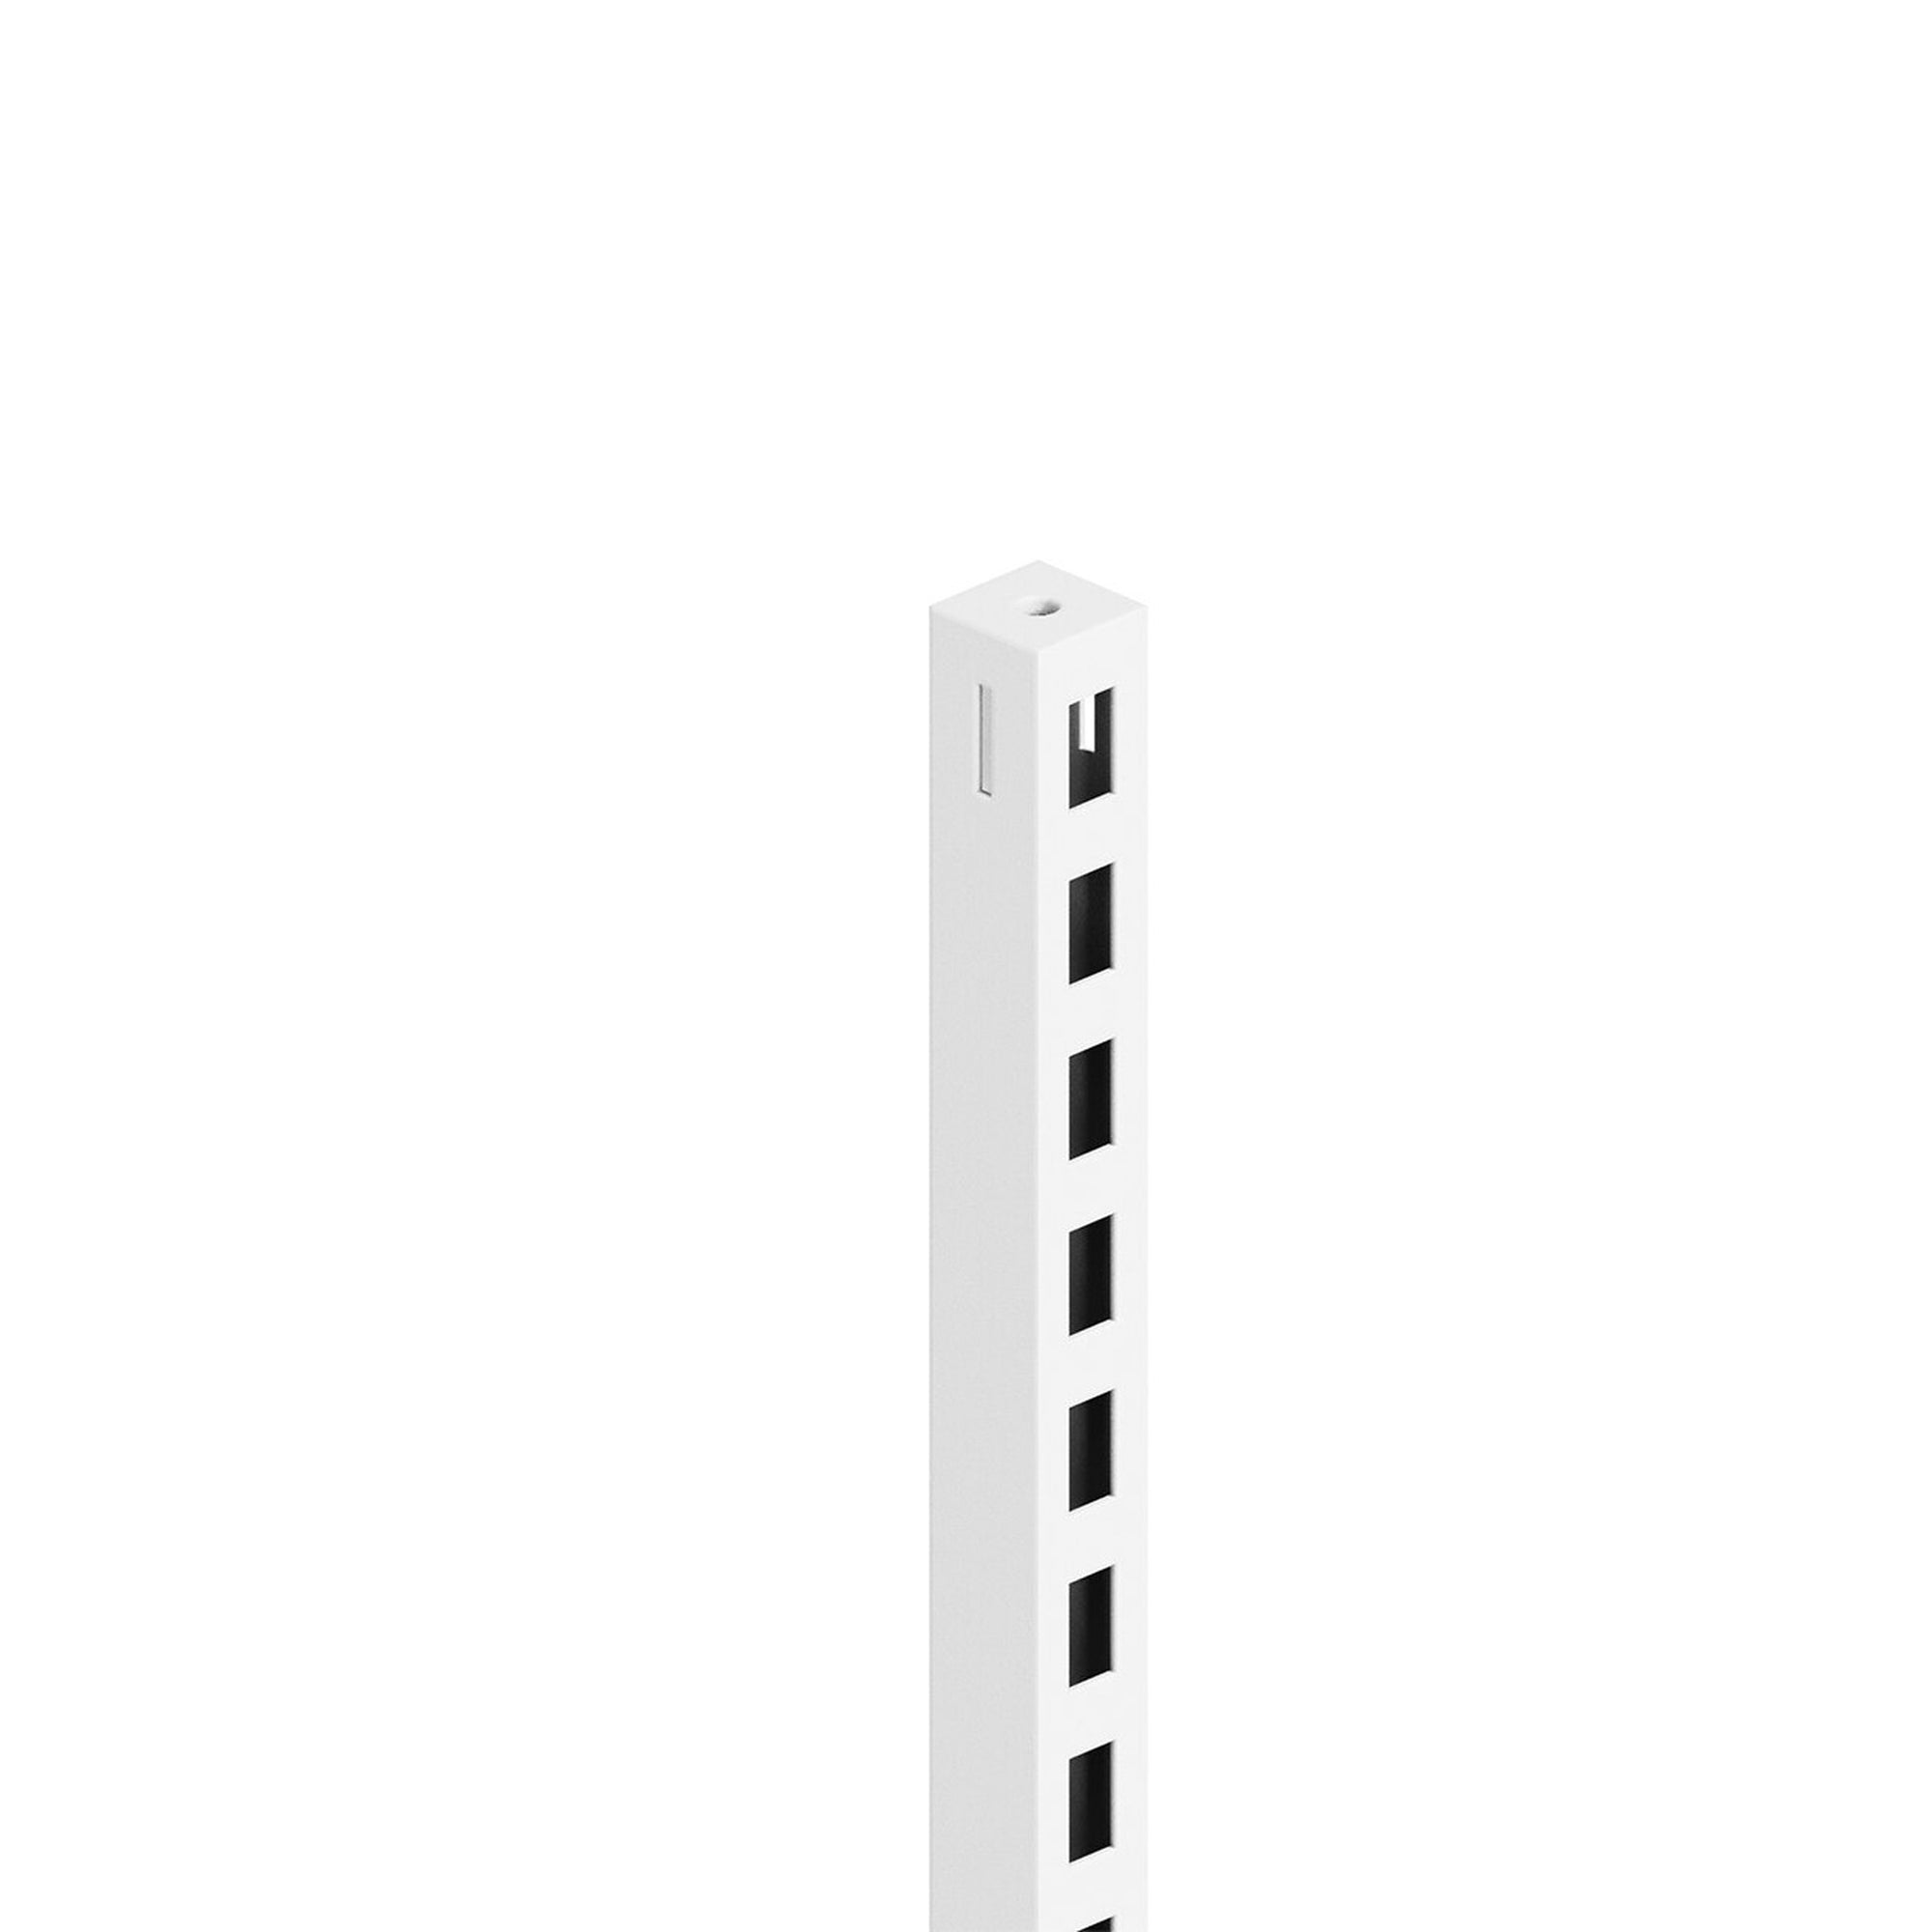 MAXe Single Sided Post - 1800 mm H x 32mm W x 32mm D (E1118.4)